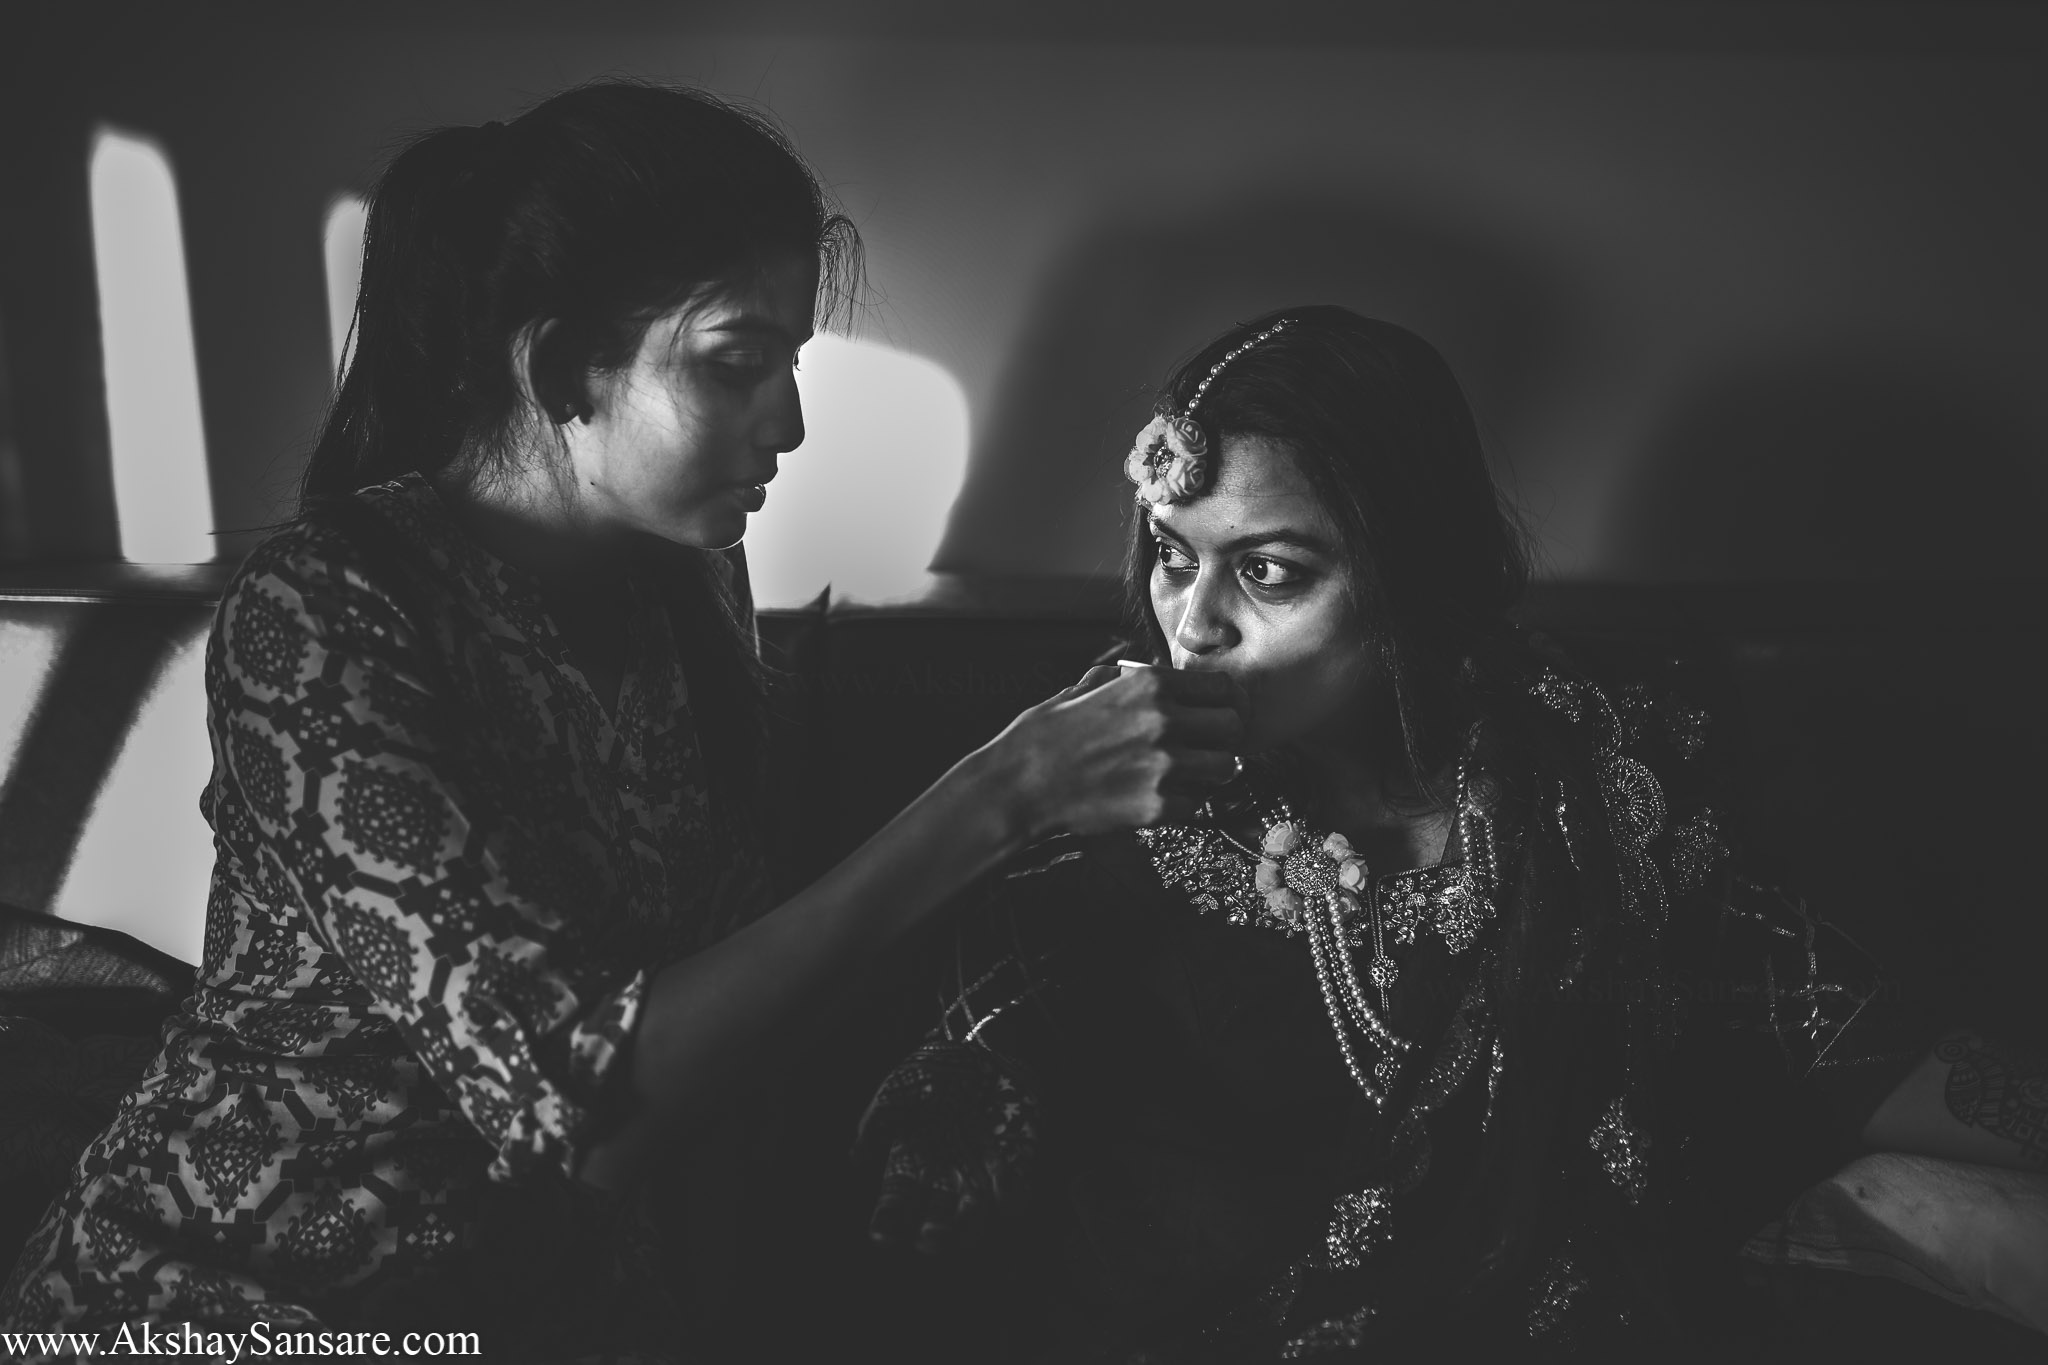 Ajay & Devika Akshay Sansare Photography Best Candid wedding photographer in mumbai india5.jpg